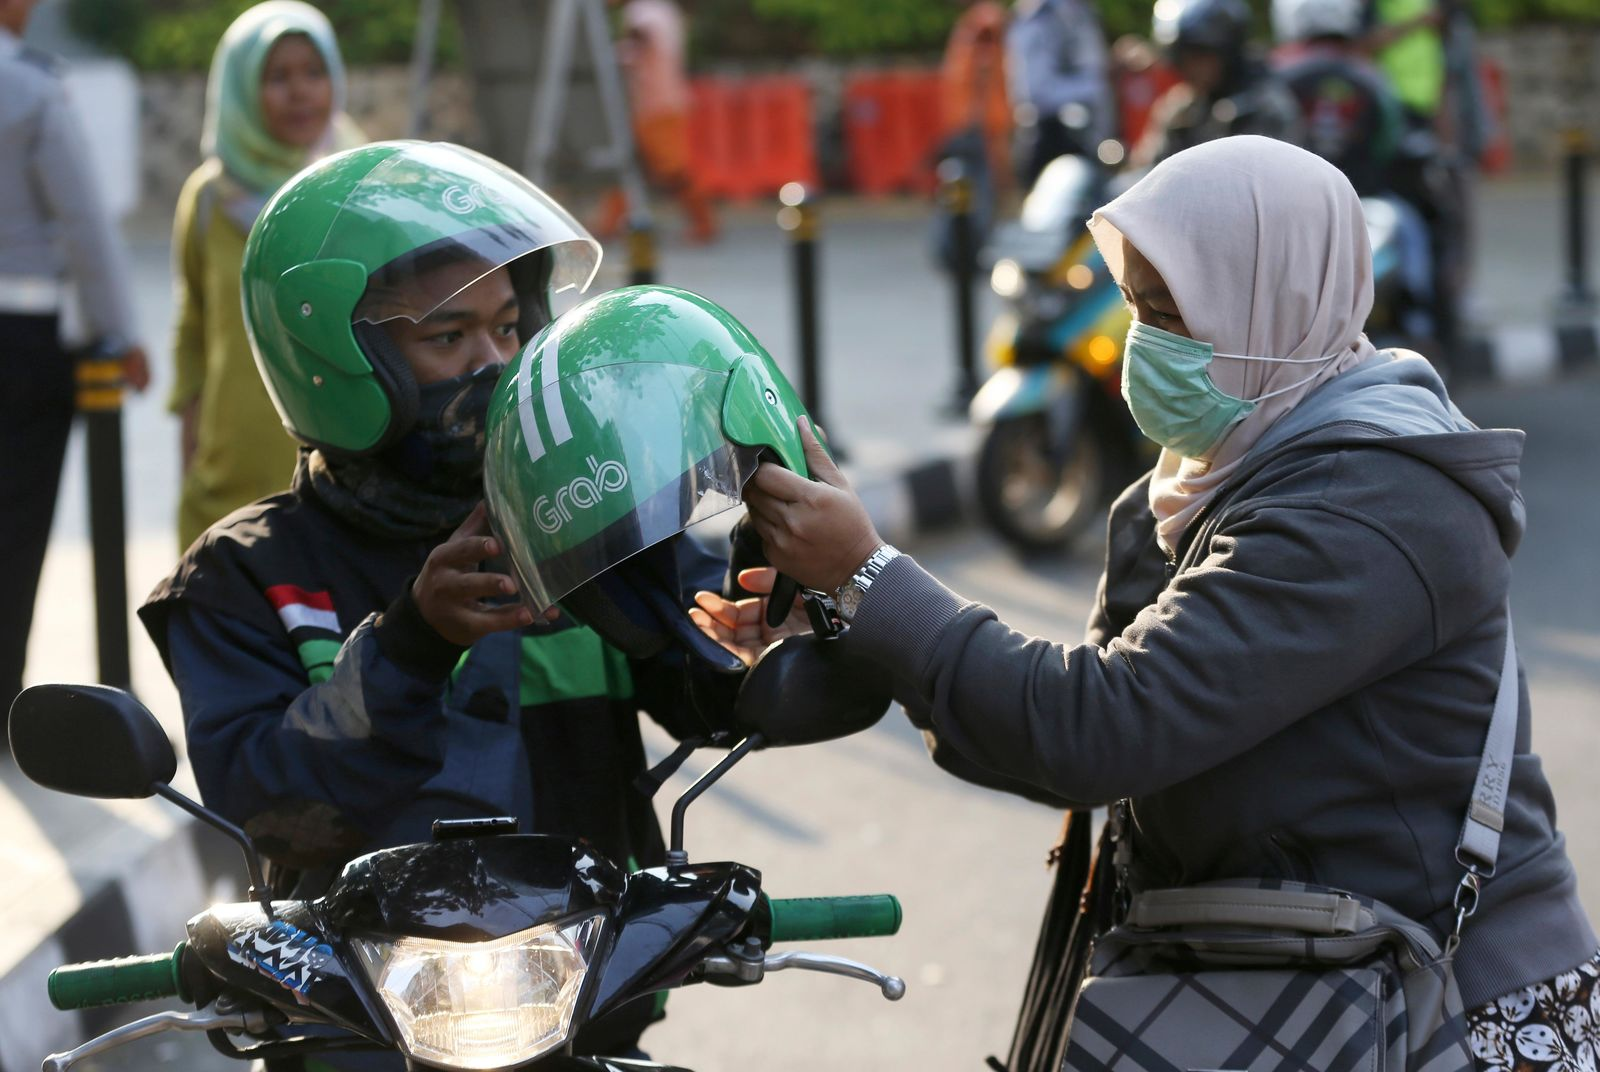 A Grab driver passes a helmet to a passenger in Jakarta, Indonesia, Monday, July 29, 2019. Japanese technology company Softbank and Southeast Asian ride hailing app Grab said Monday, July 29, 2019, they're investing $2 billion in Indonesia over the next five years. (AP Photo/Achmad Ibrahim)